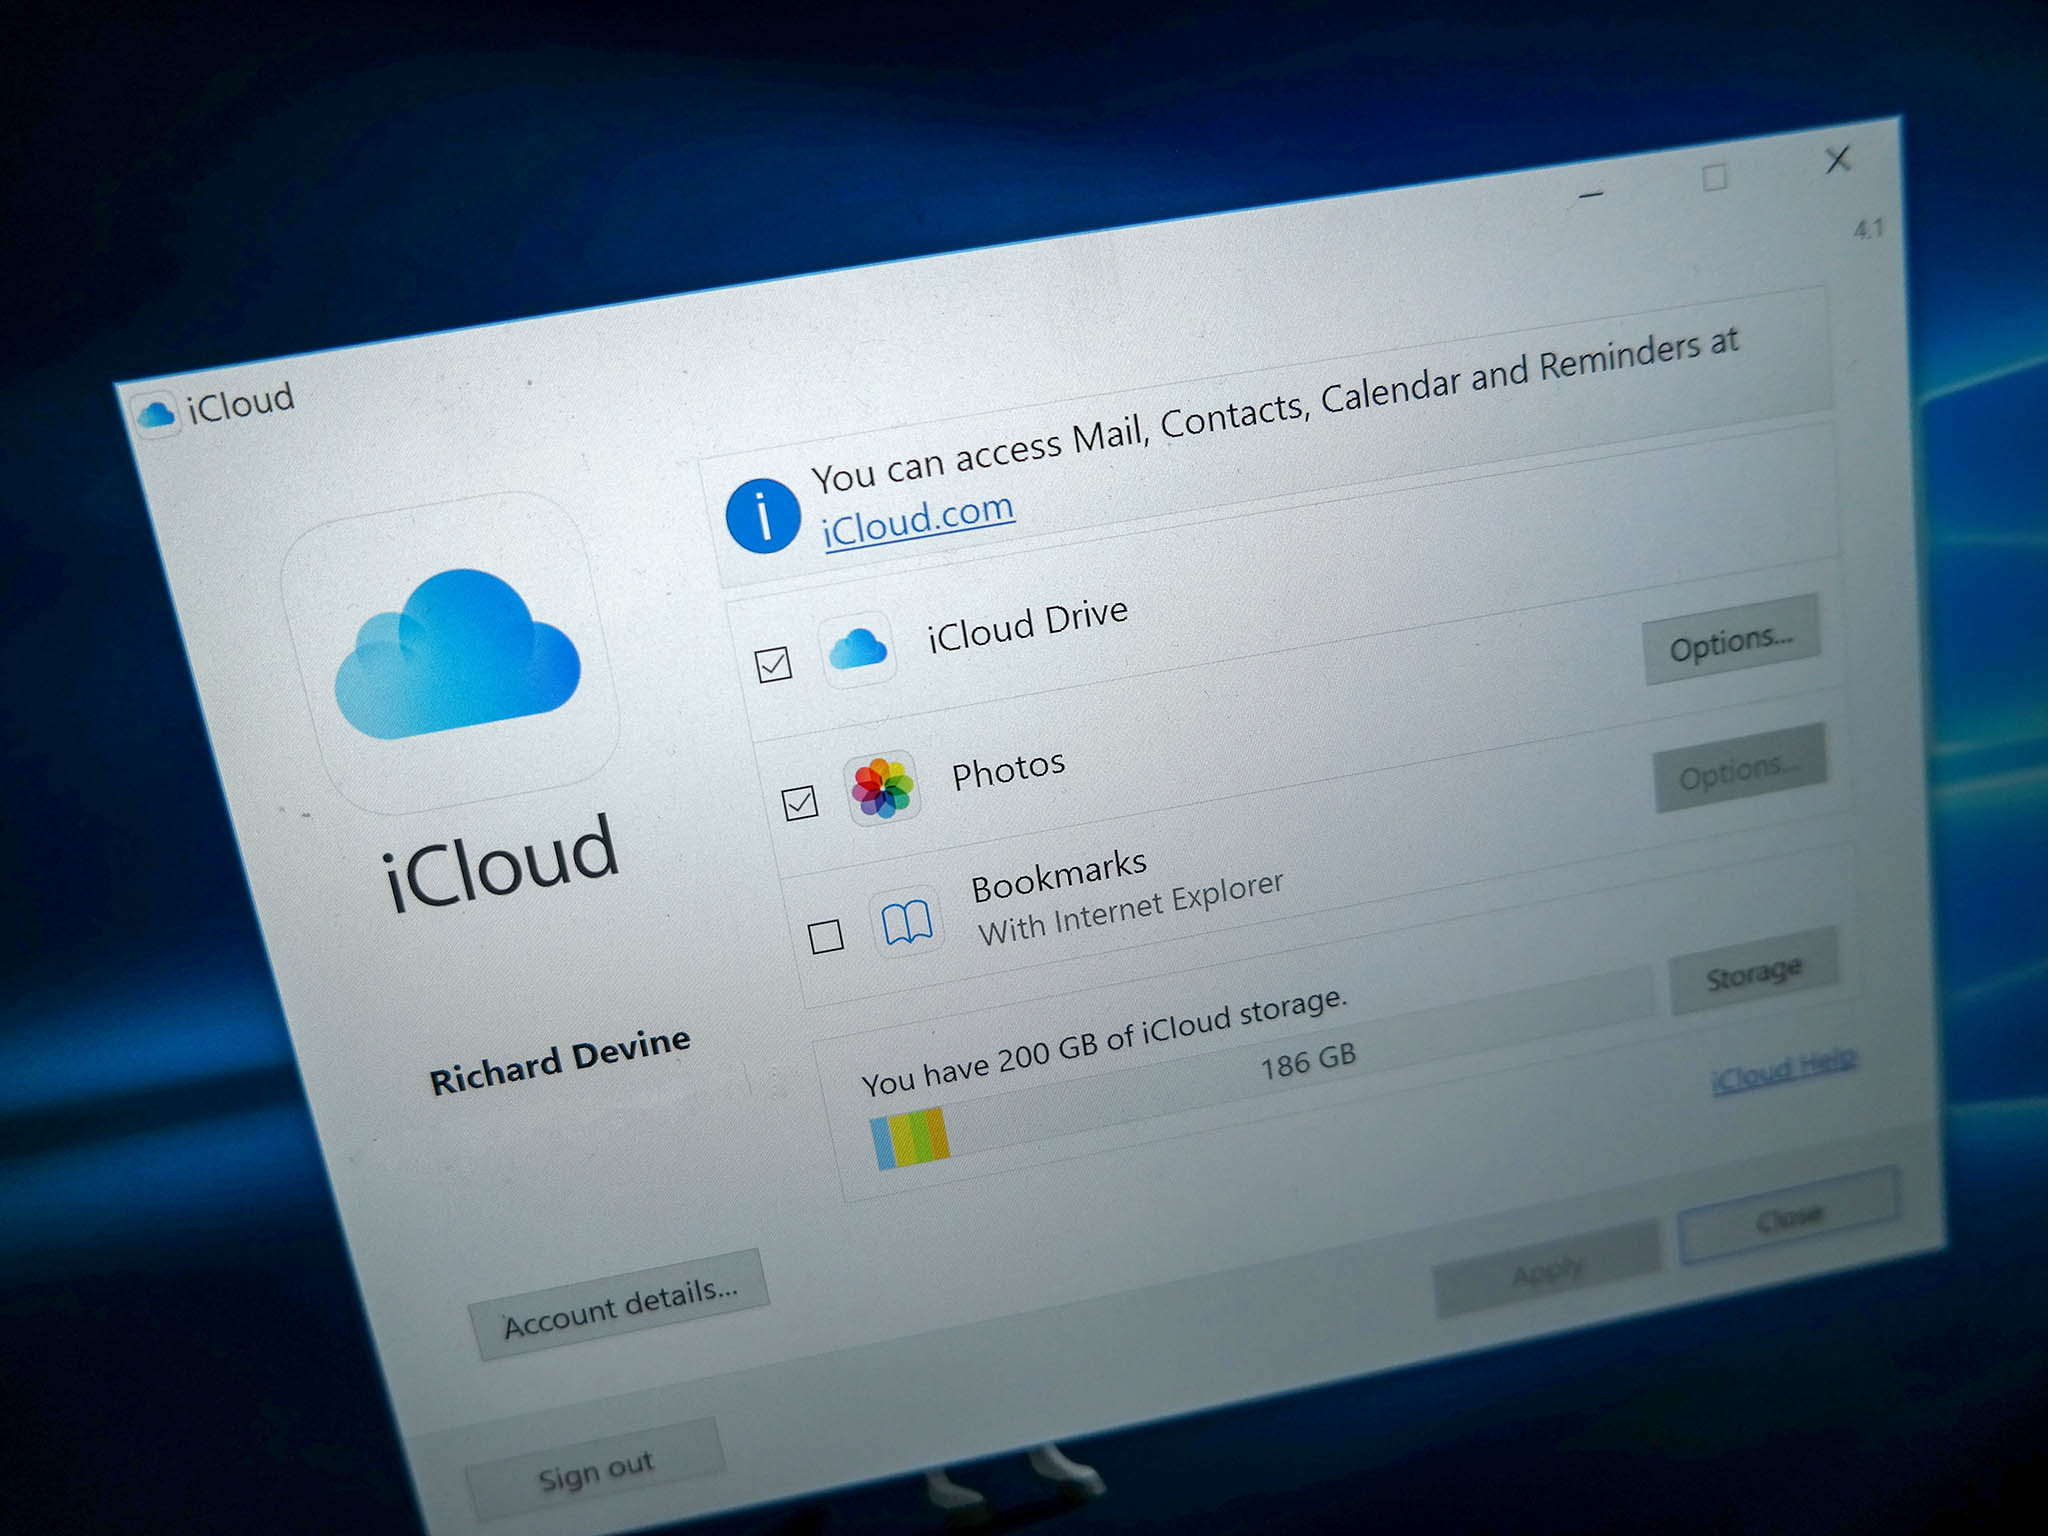 iCloud on Windows 10